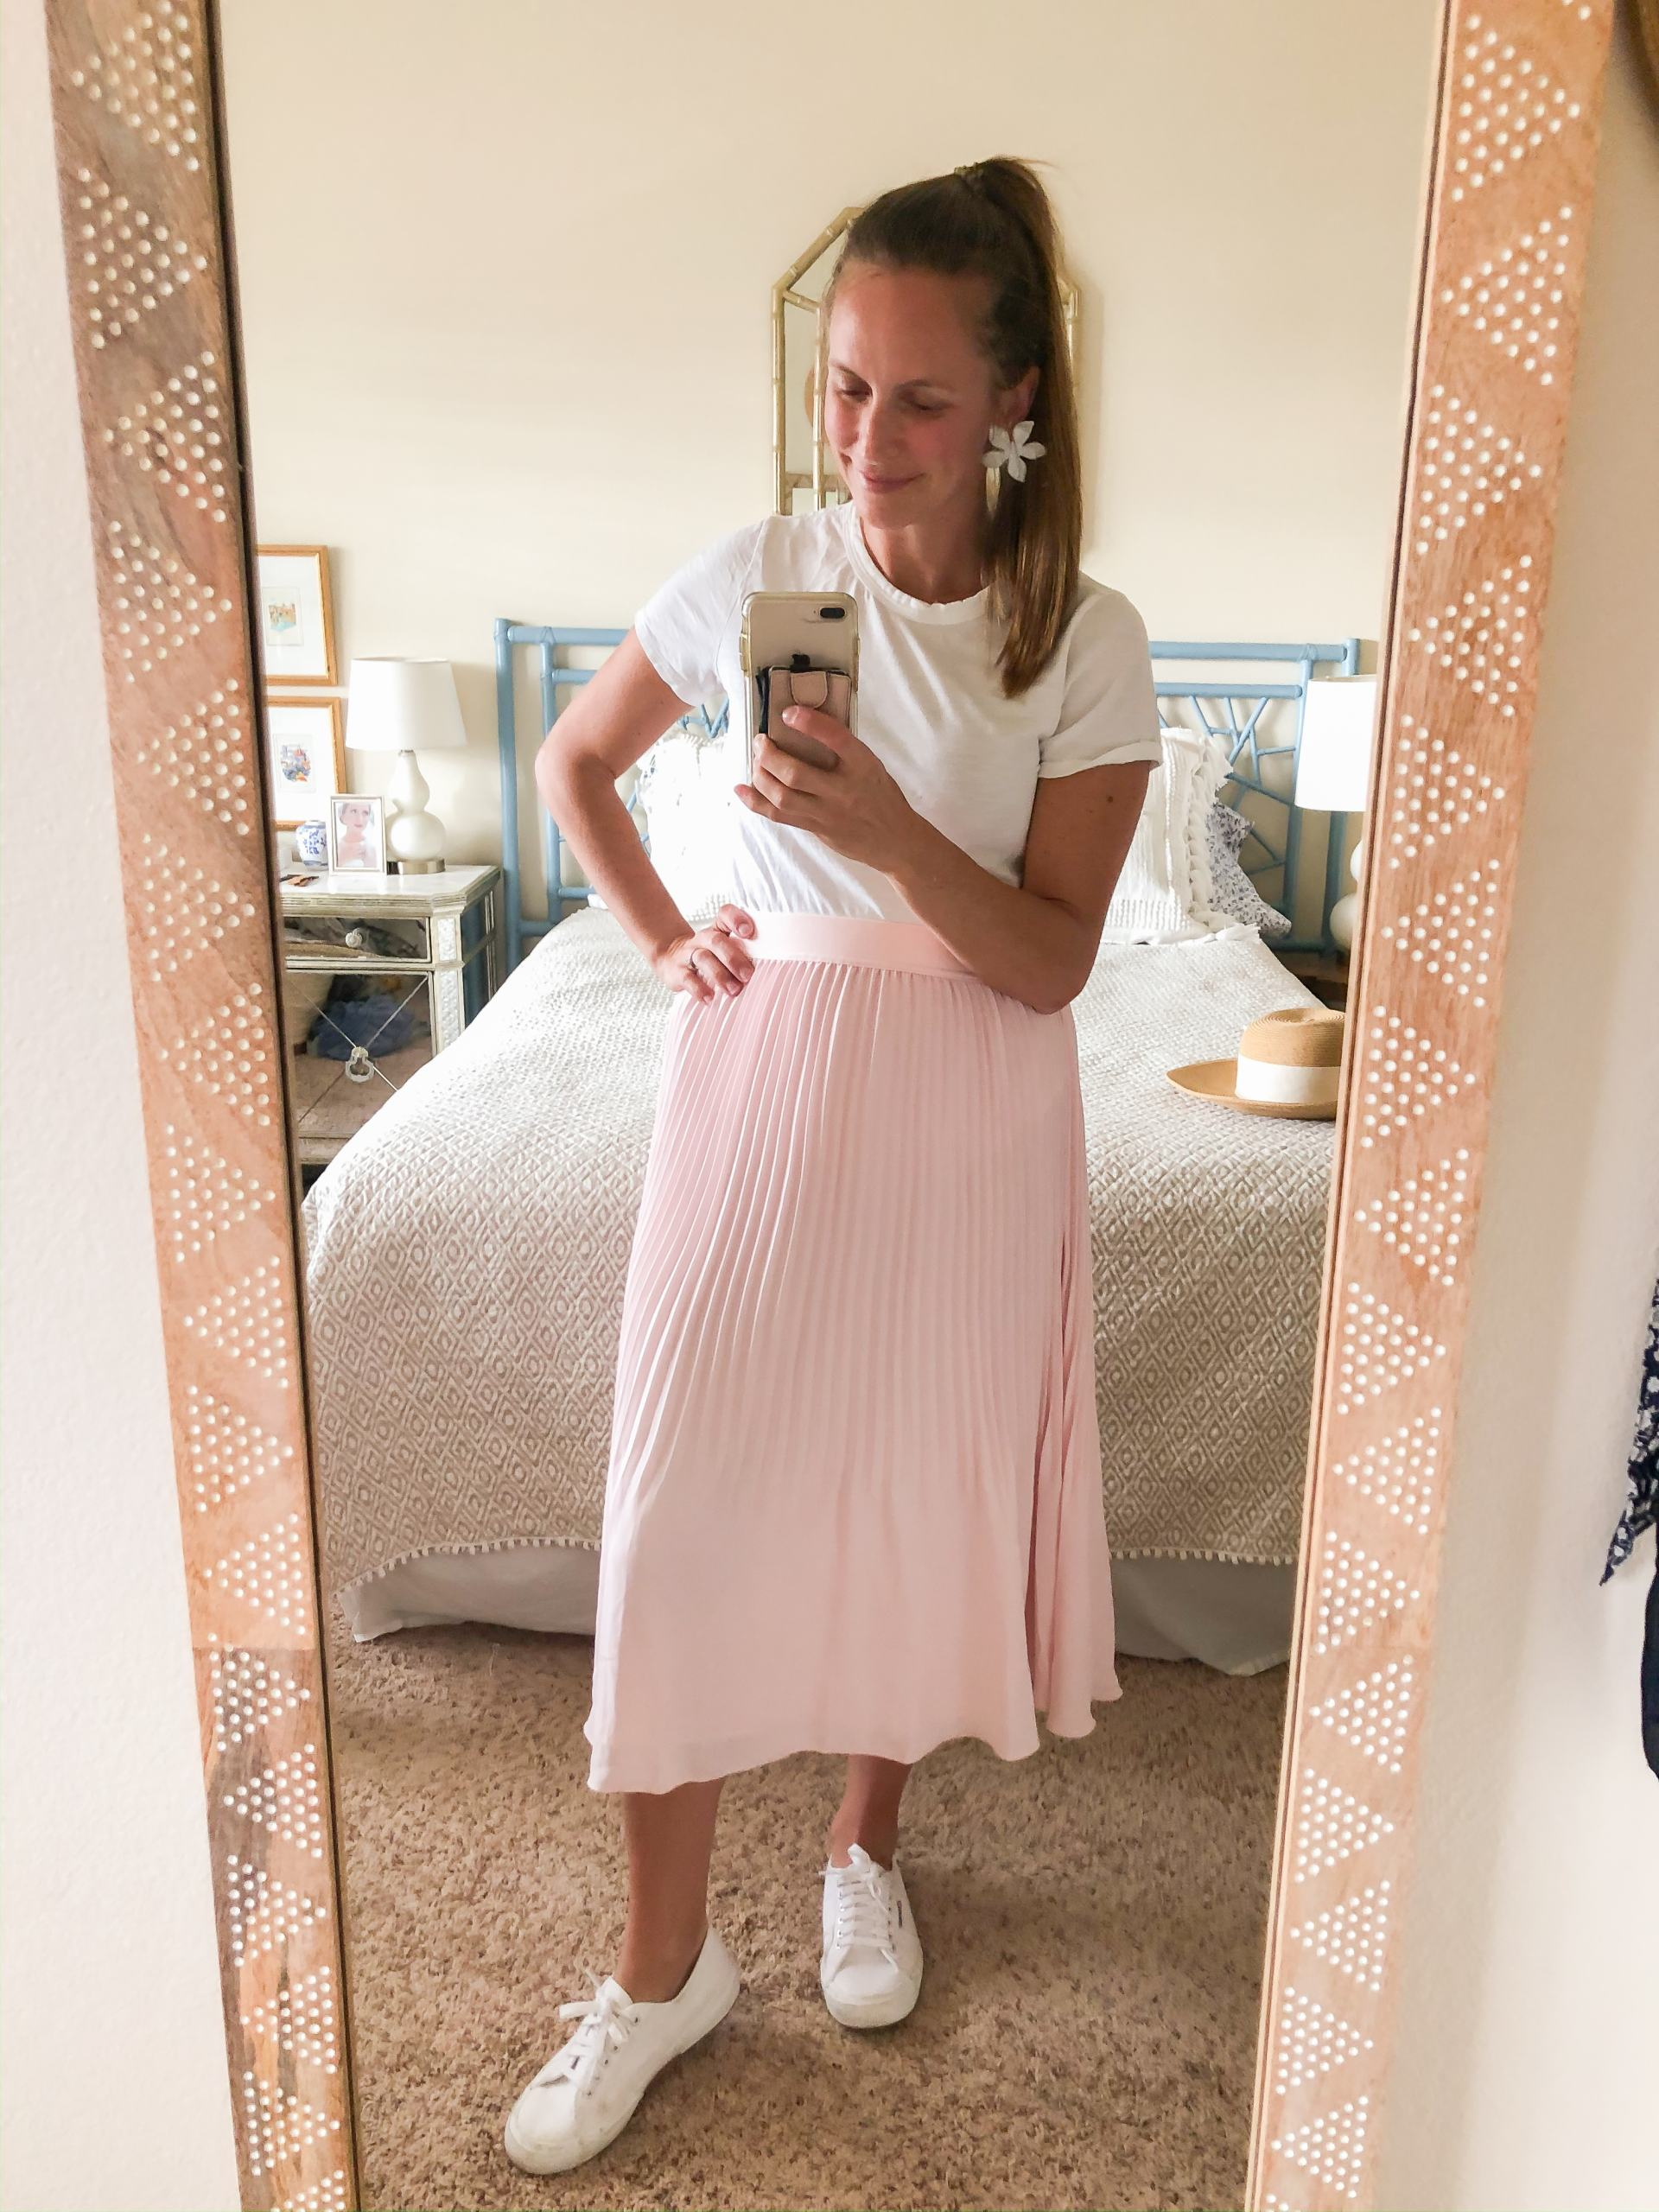 pleated pink midi skirt - elastic waist midi skirt - mom friendly midi skirt - spring outfit ideas - skirt and sneakers - skirt with sneakers